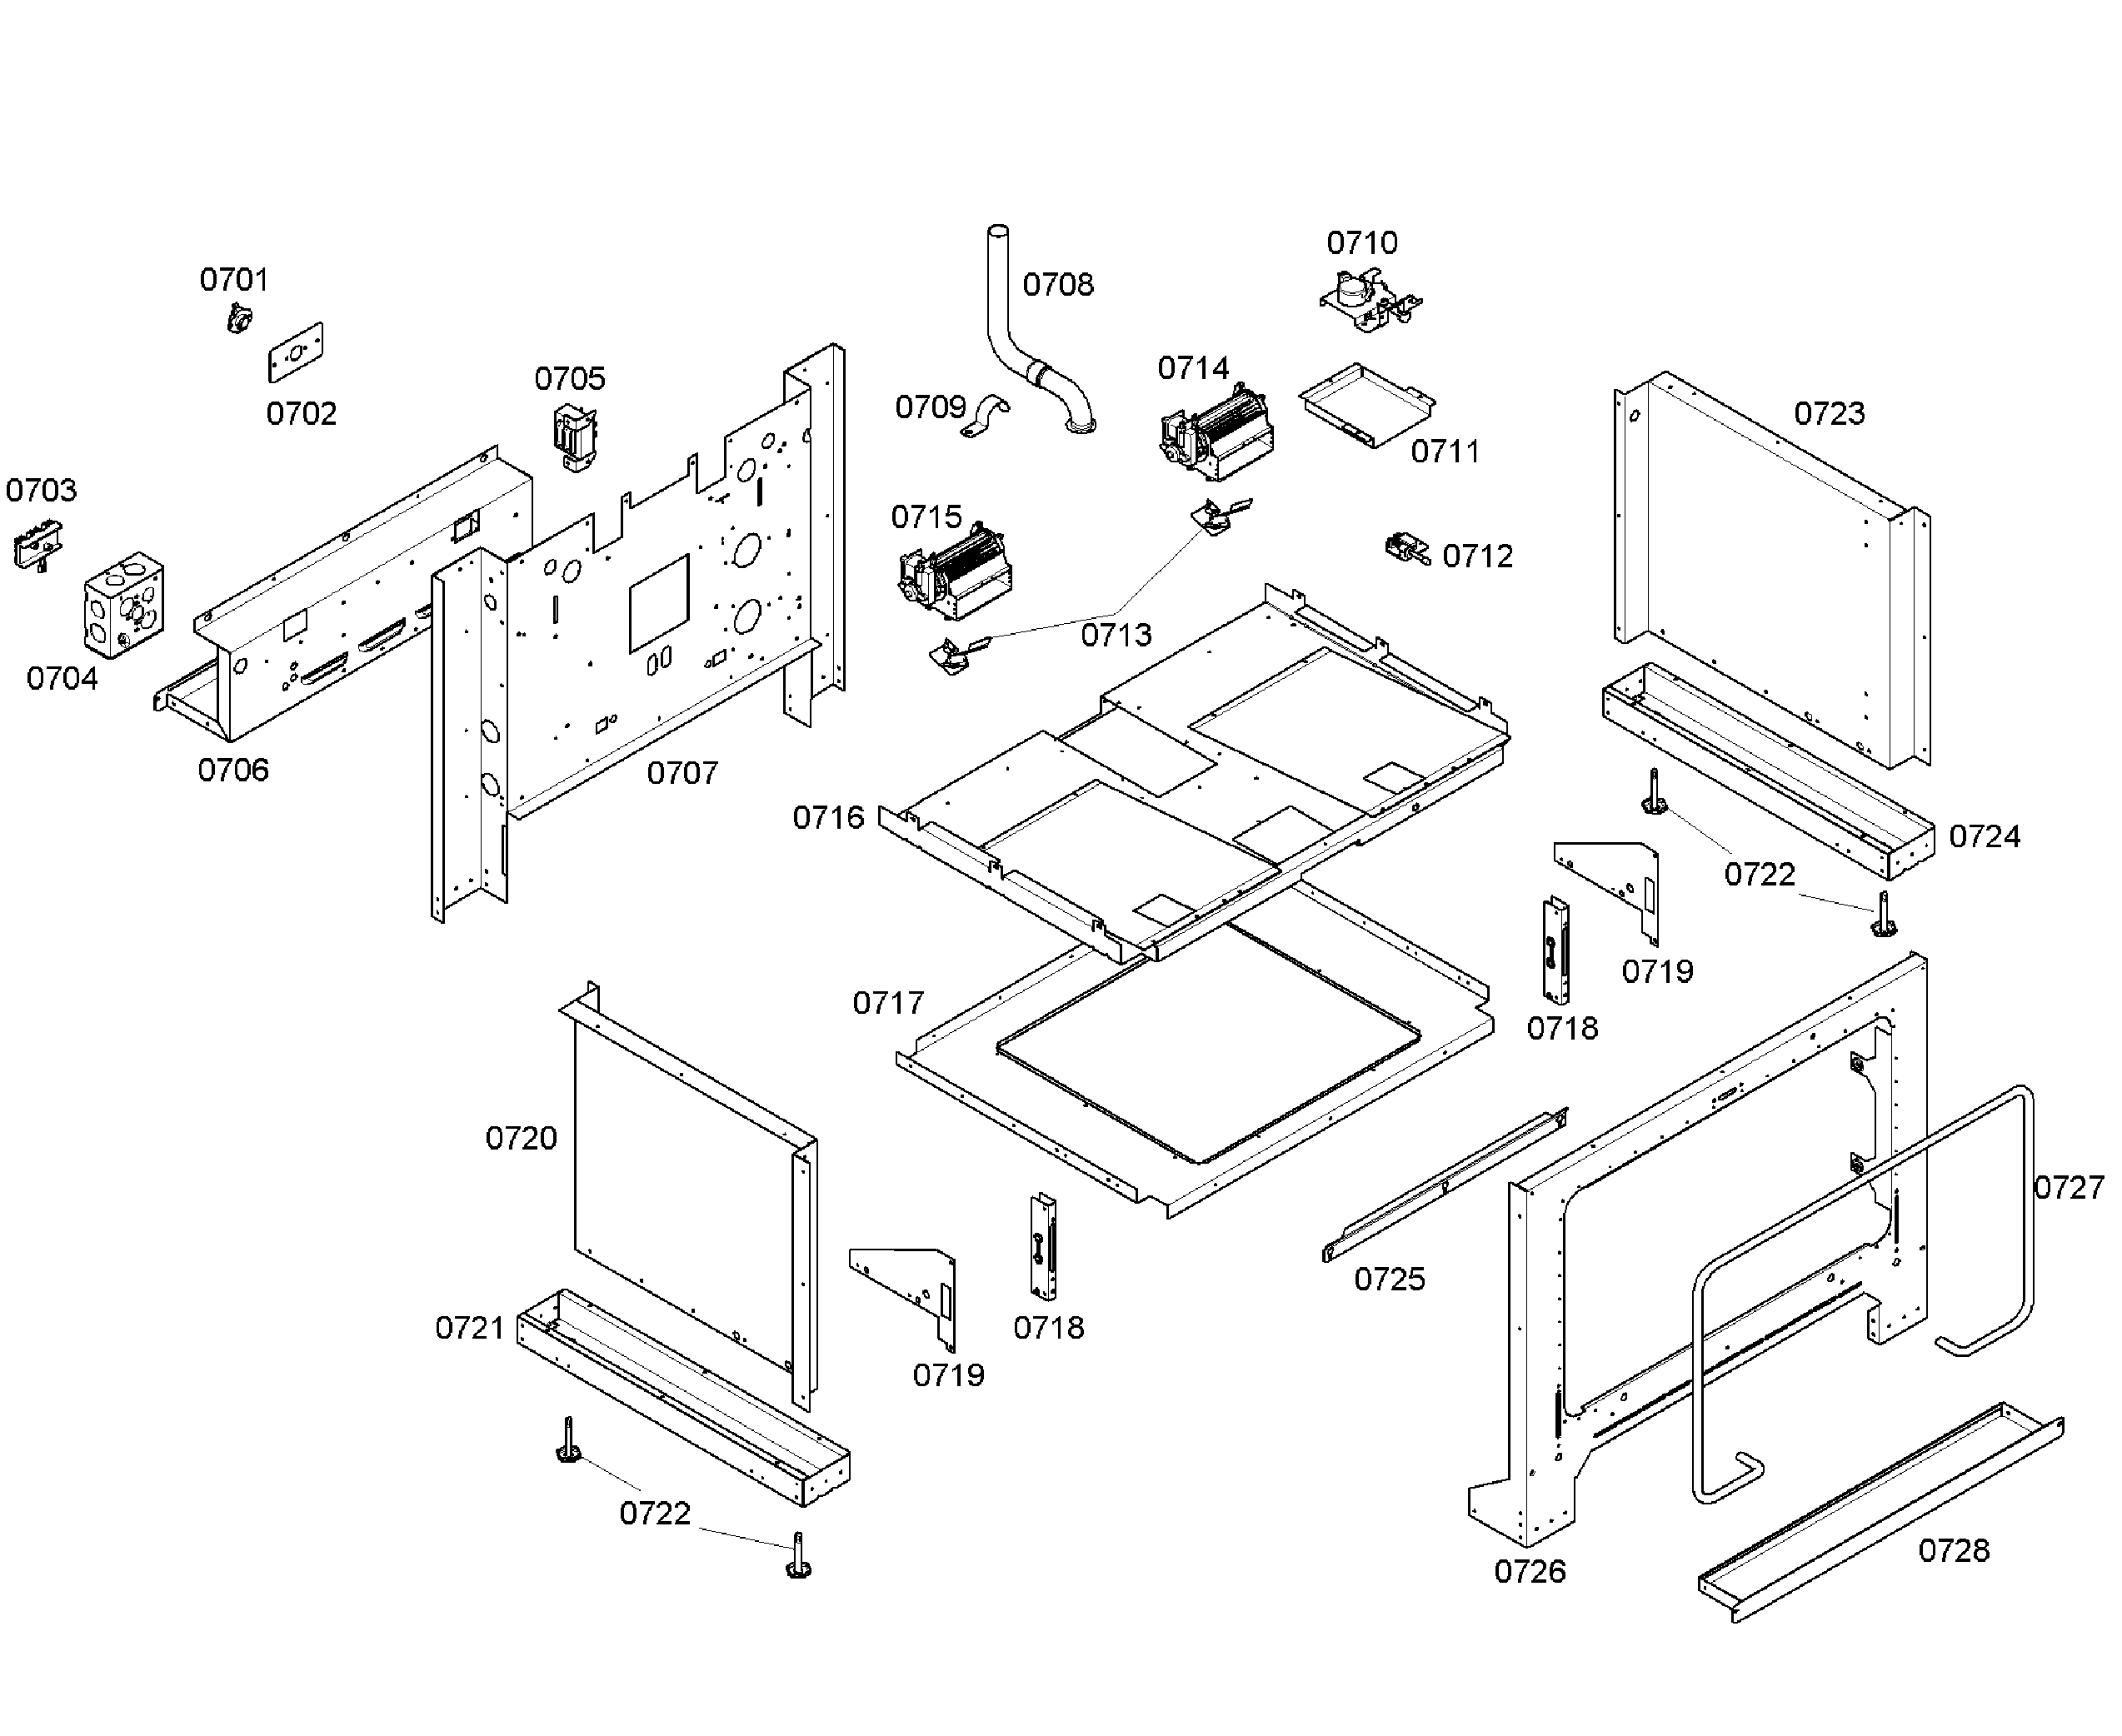 Thermador PD366BS/04 cabinet assy diagram